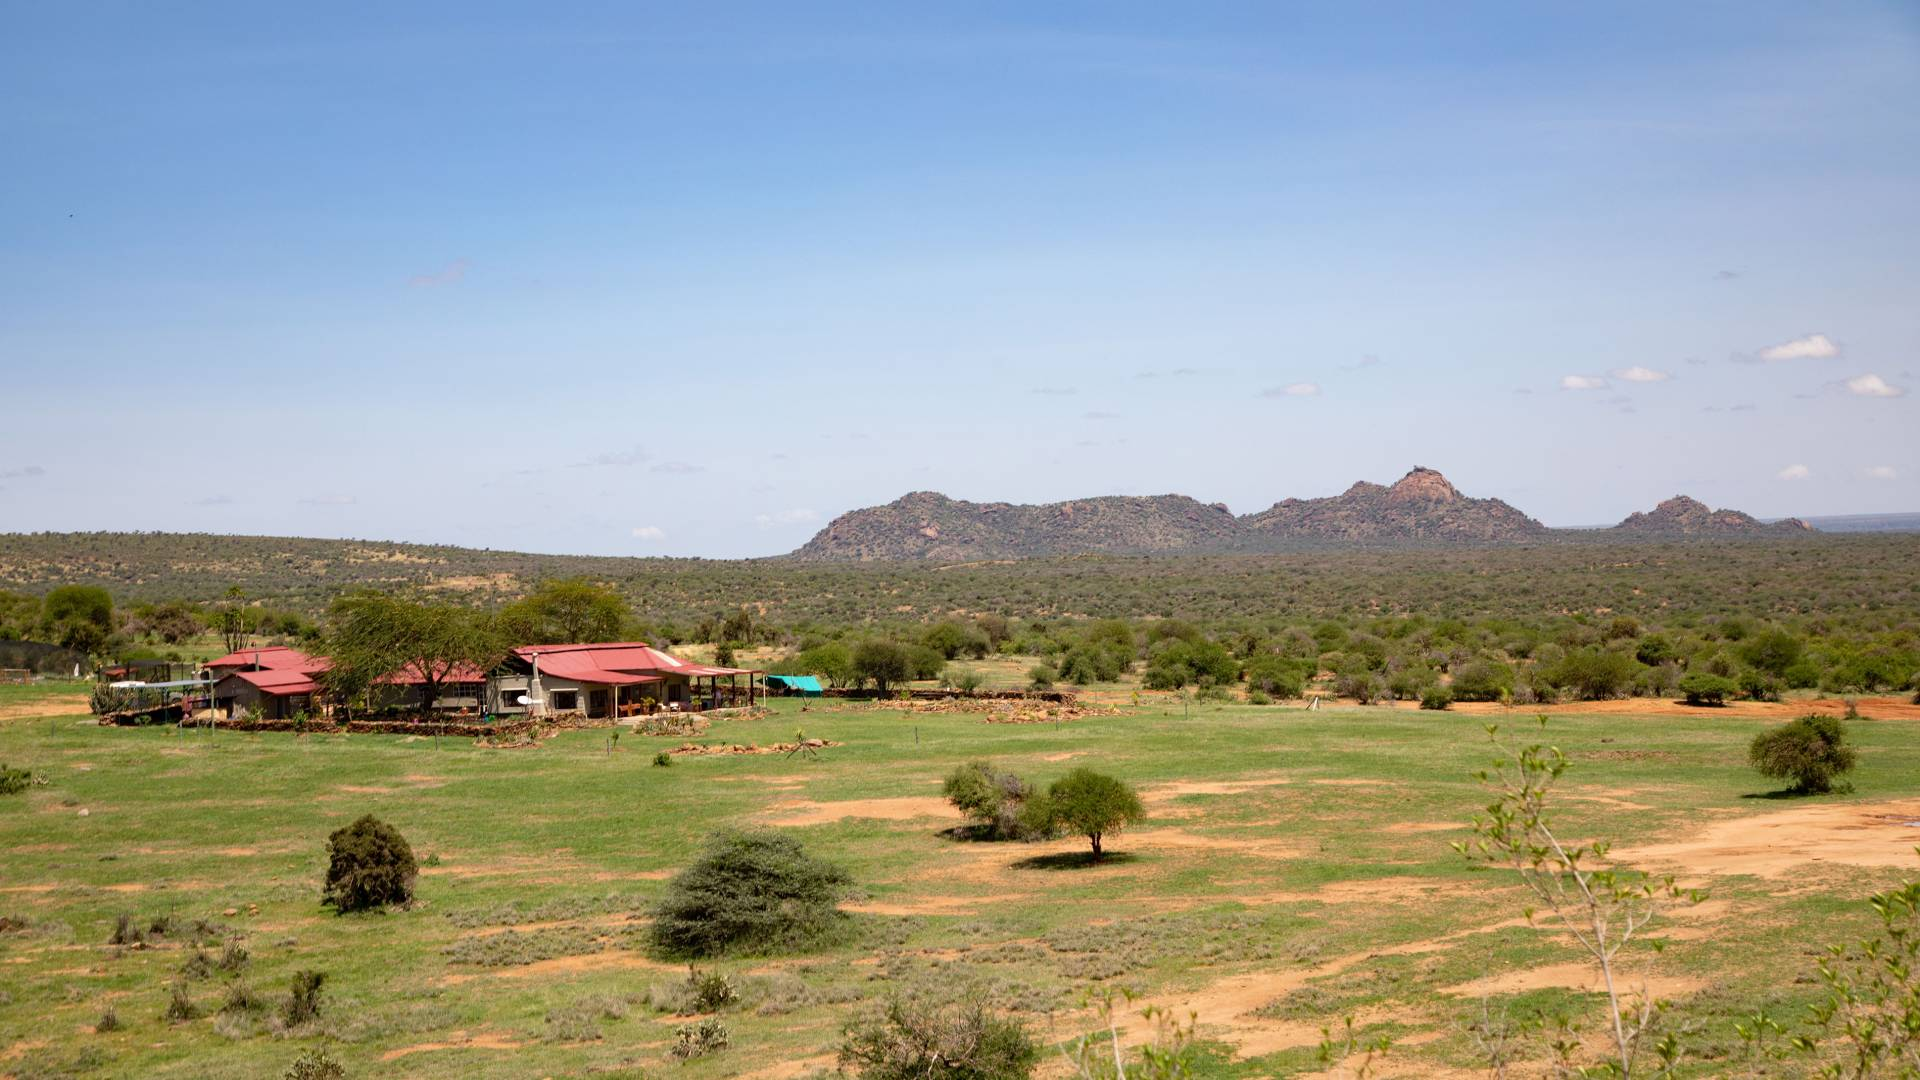 Landscape and Mpala research center